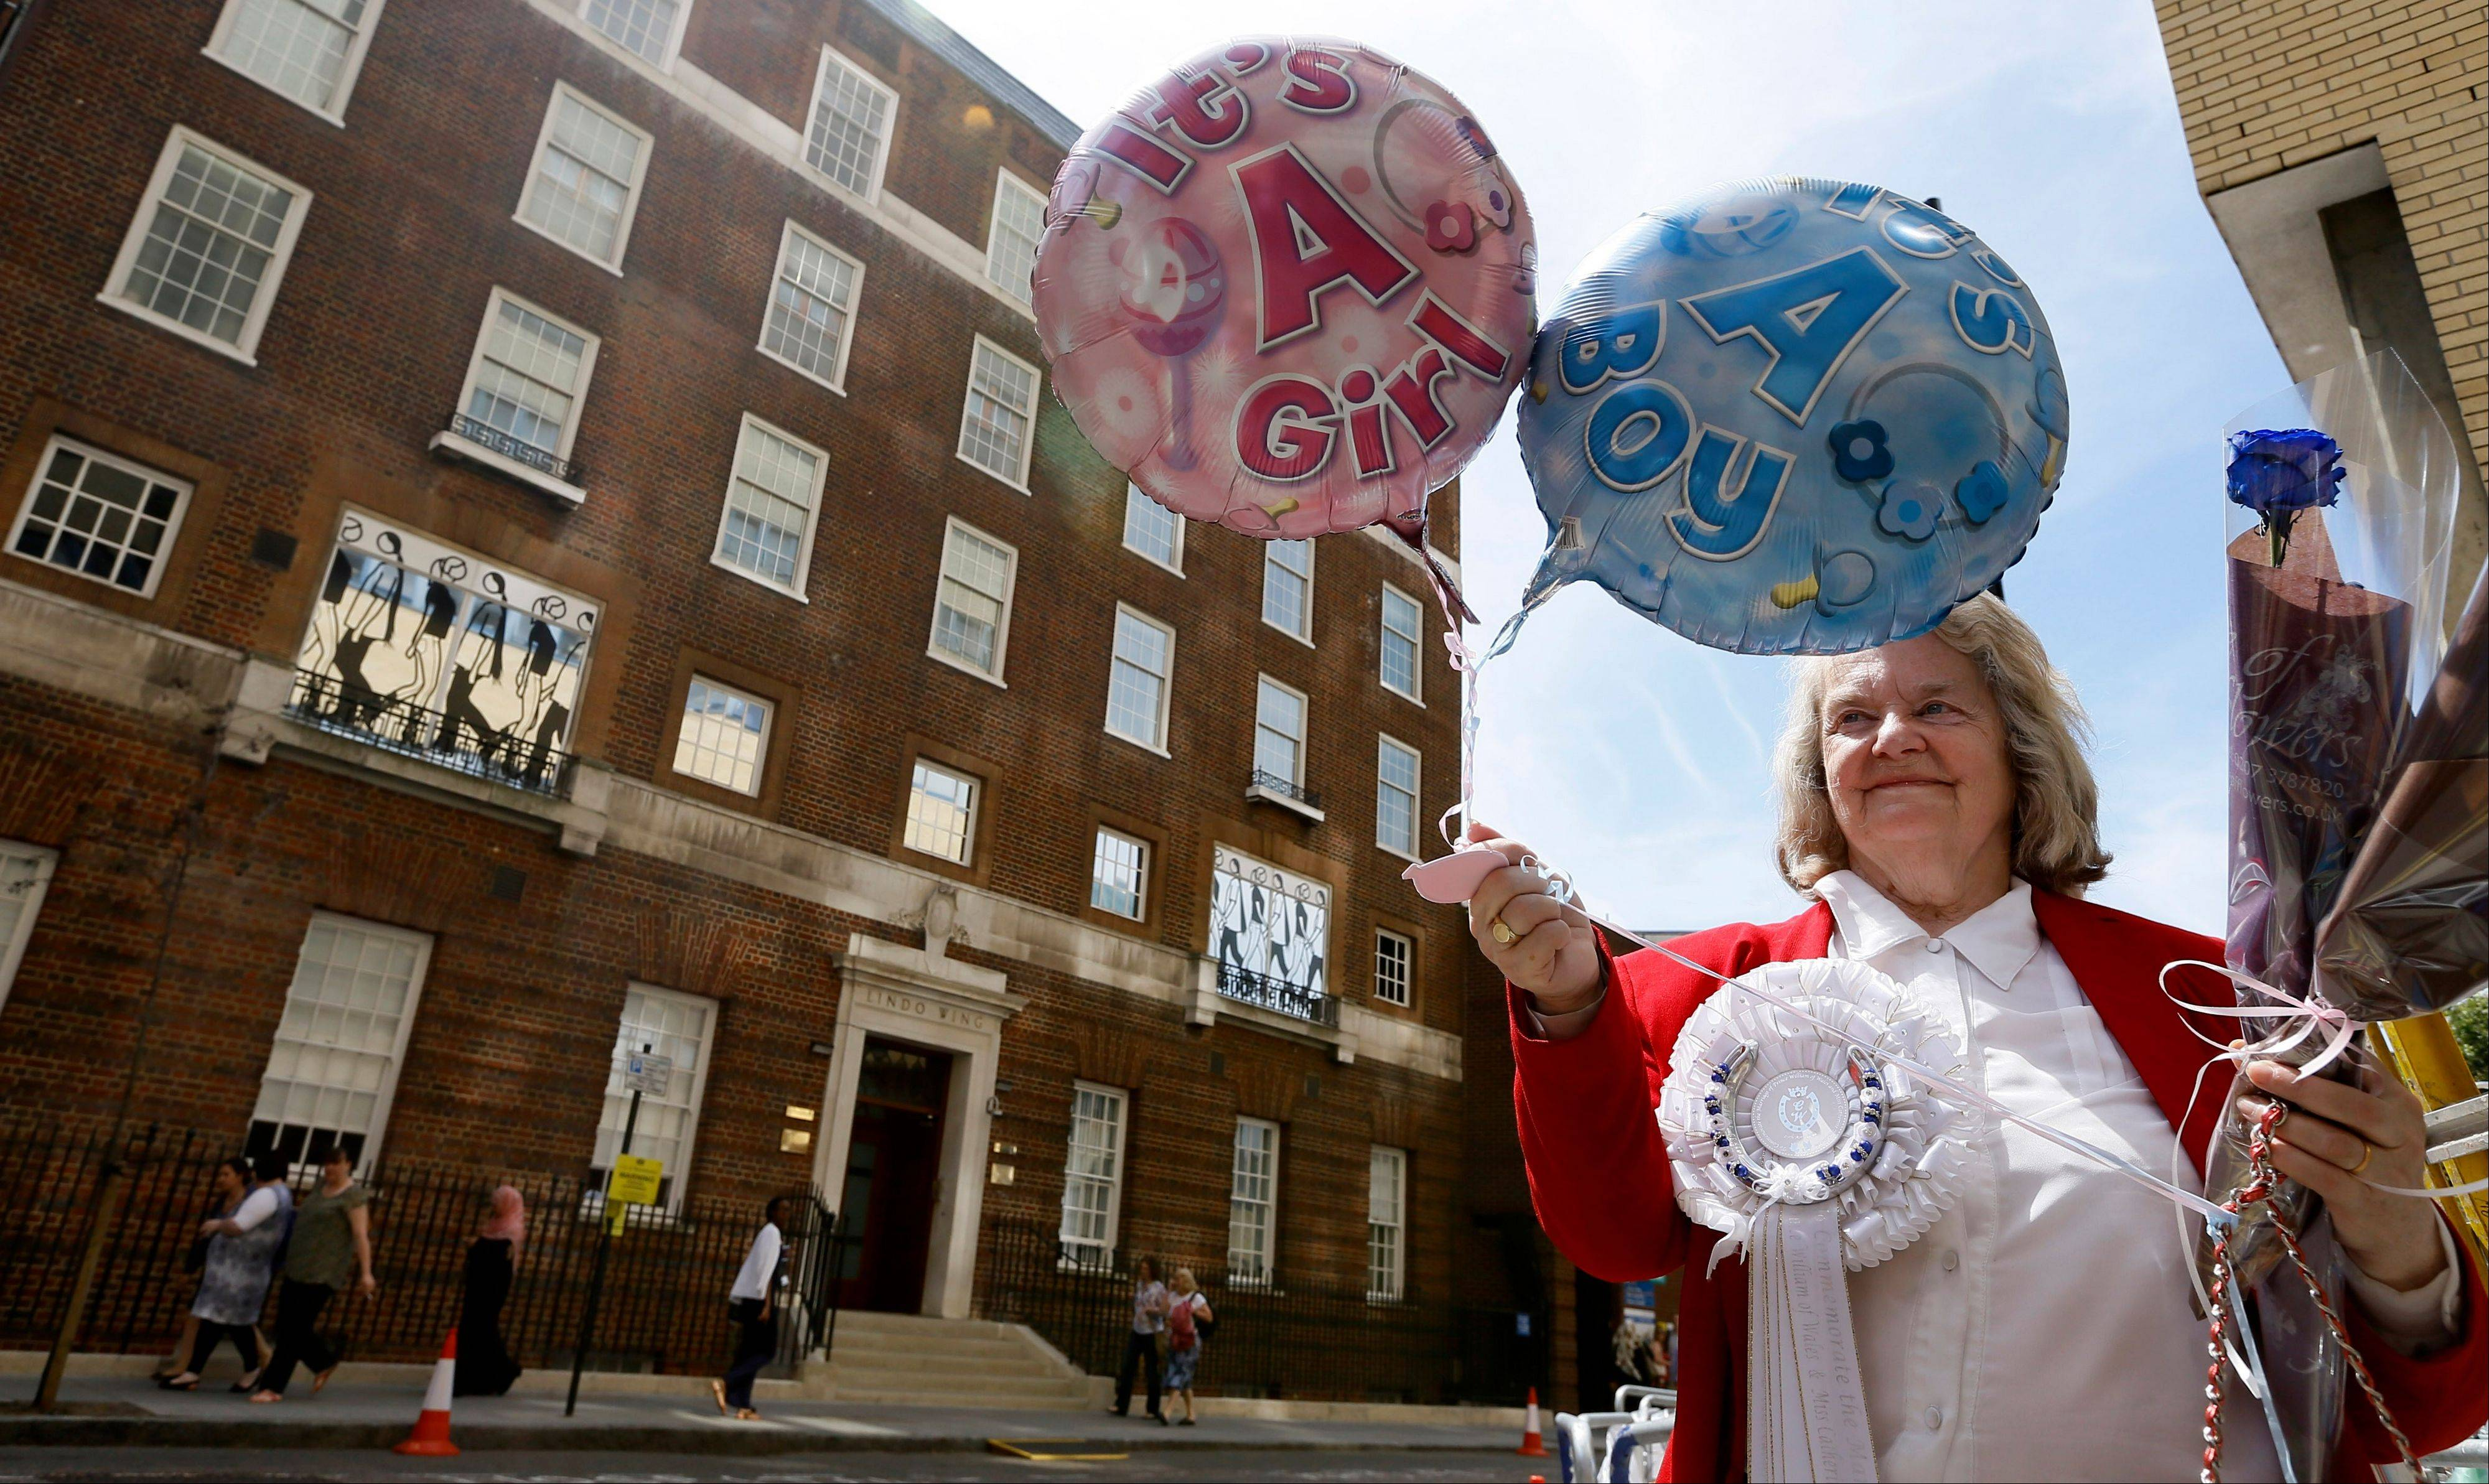 Royal supporter Margaret Tyler displays balloons for the media in front of the Lindo Wing at St Mary's Hospital in London. Britain's Kate, the Duchess of Cambridge plans to give birth to her first child who will be third-in-line to the throne at the hospital in mid-July.